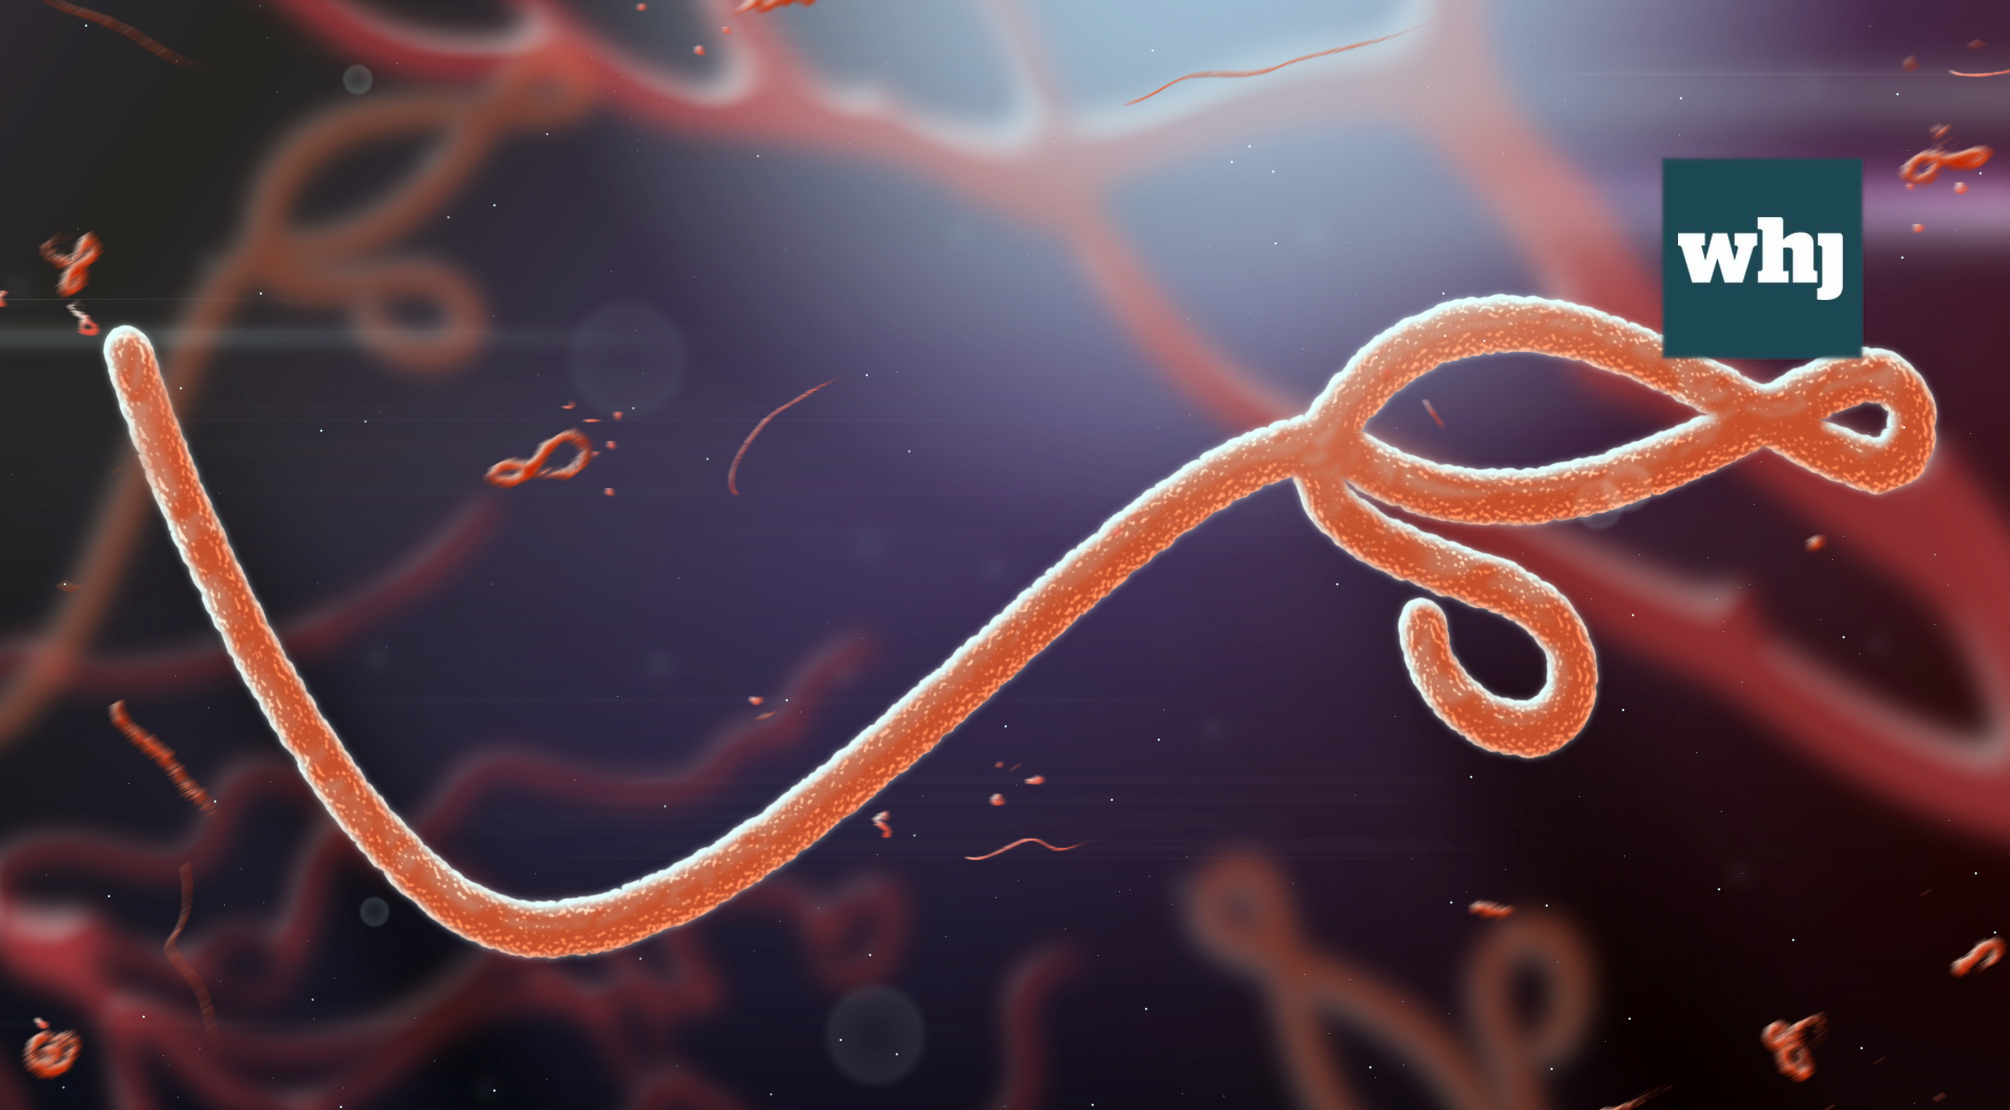 Democratic Republic of the Congo confirms new Ebola case